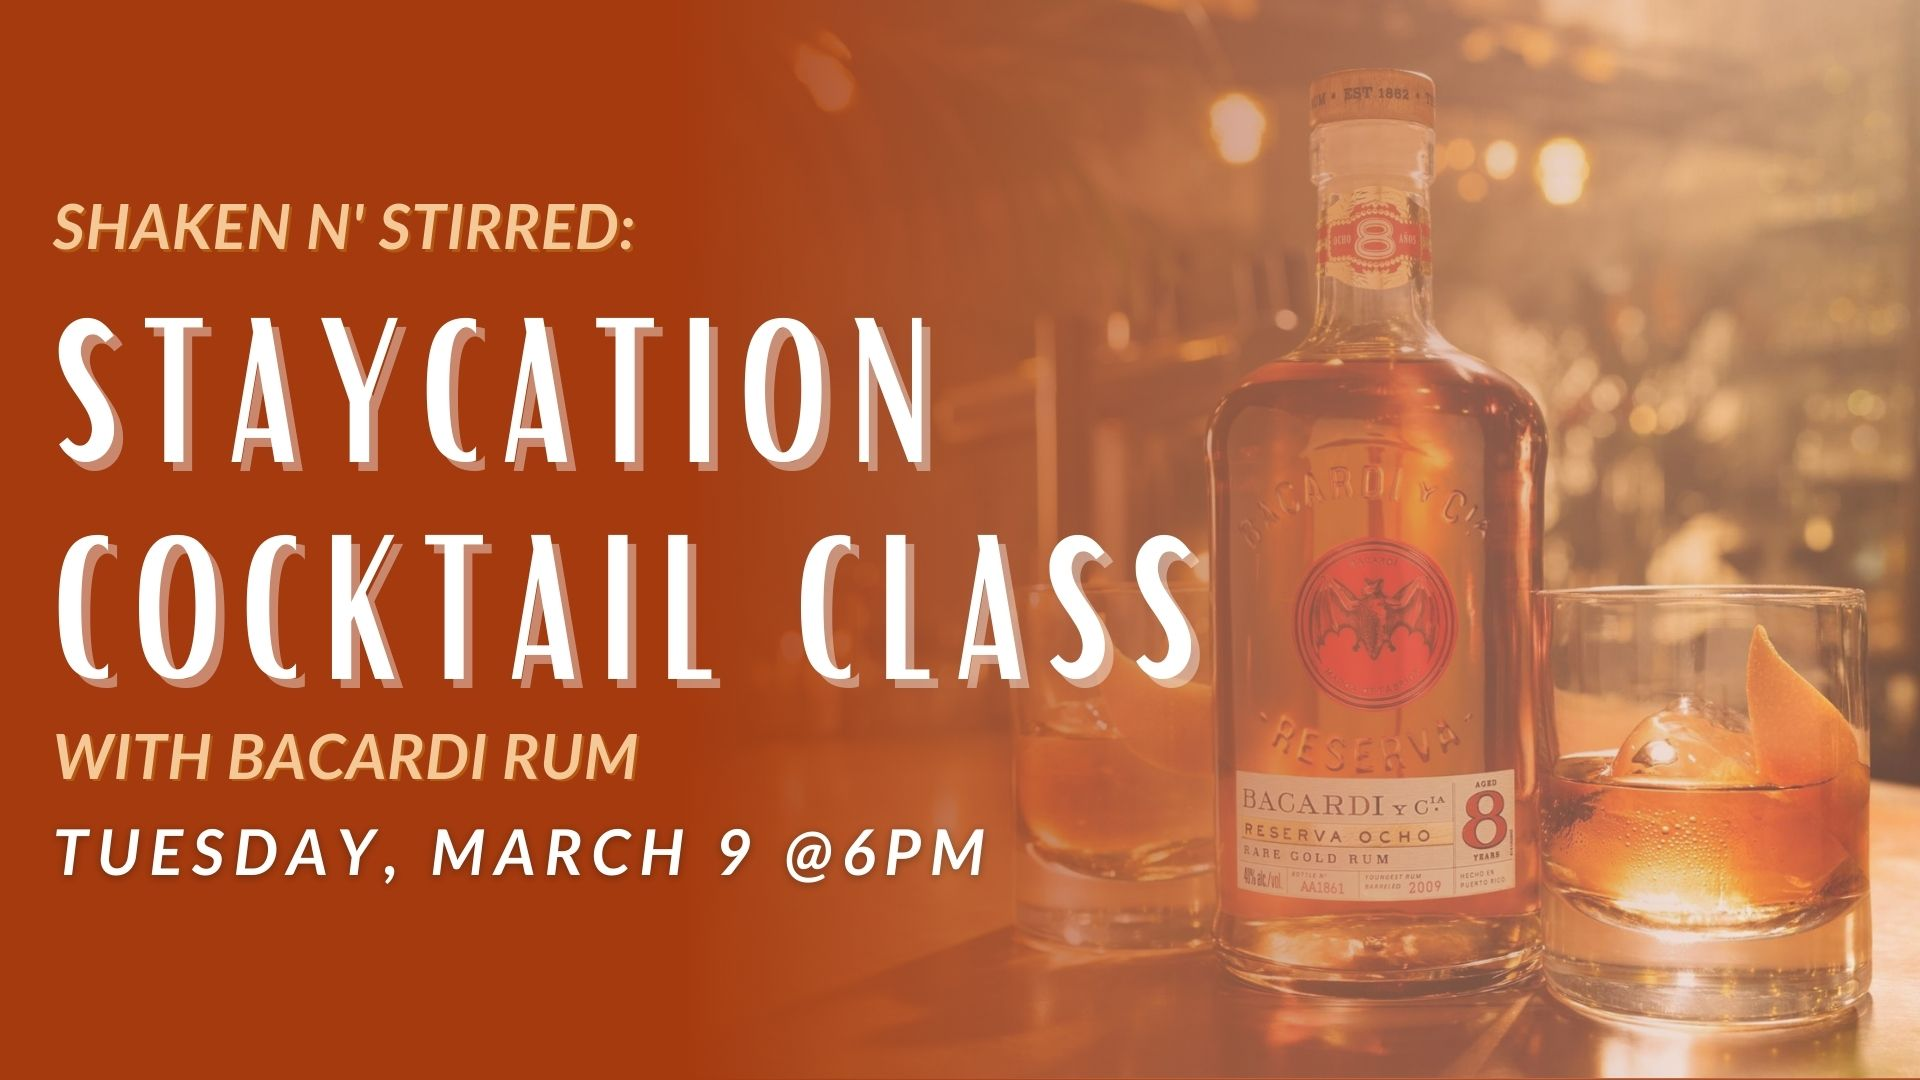 Promo image of Shaken N' Stirred: Staycation Cocktail Class with Bacardi